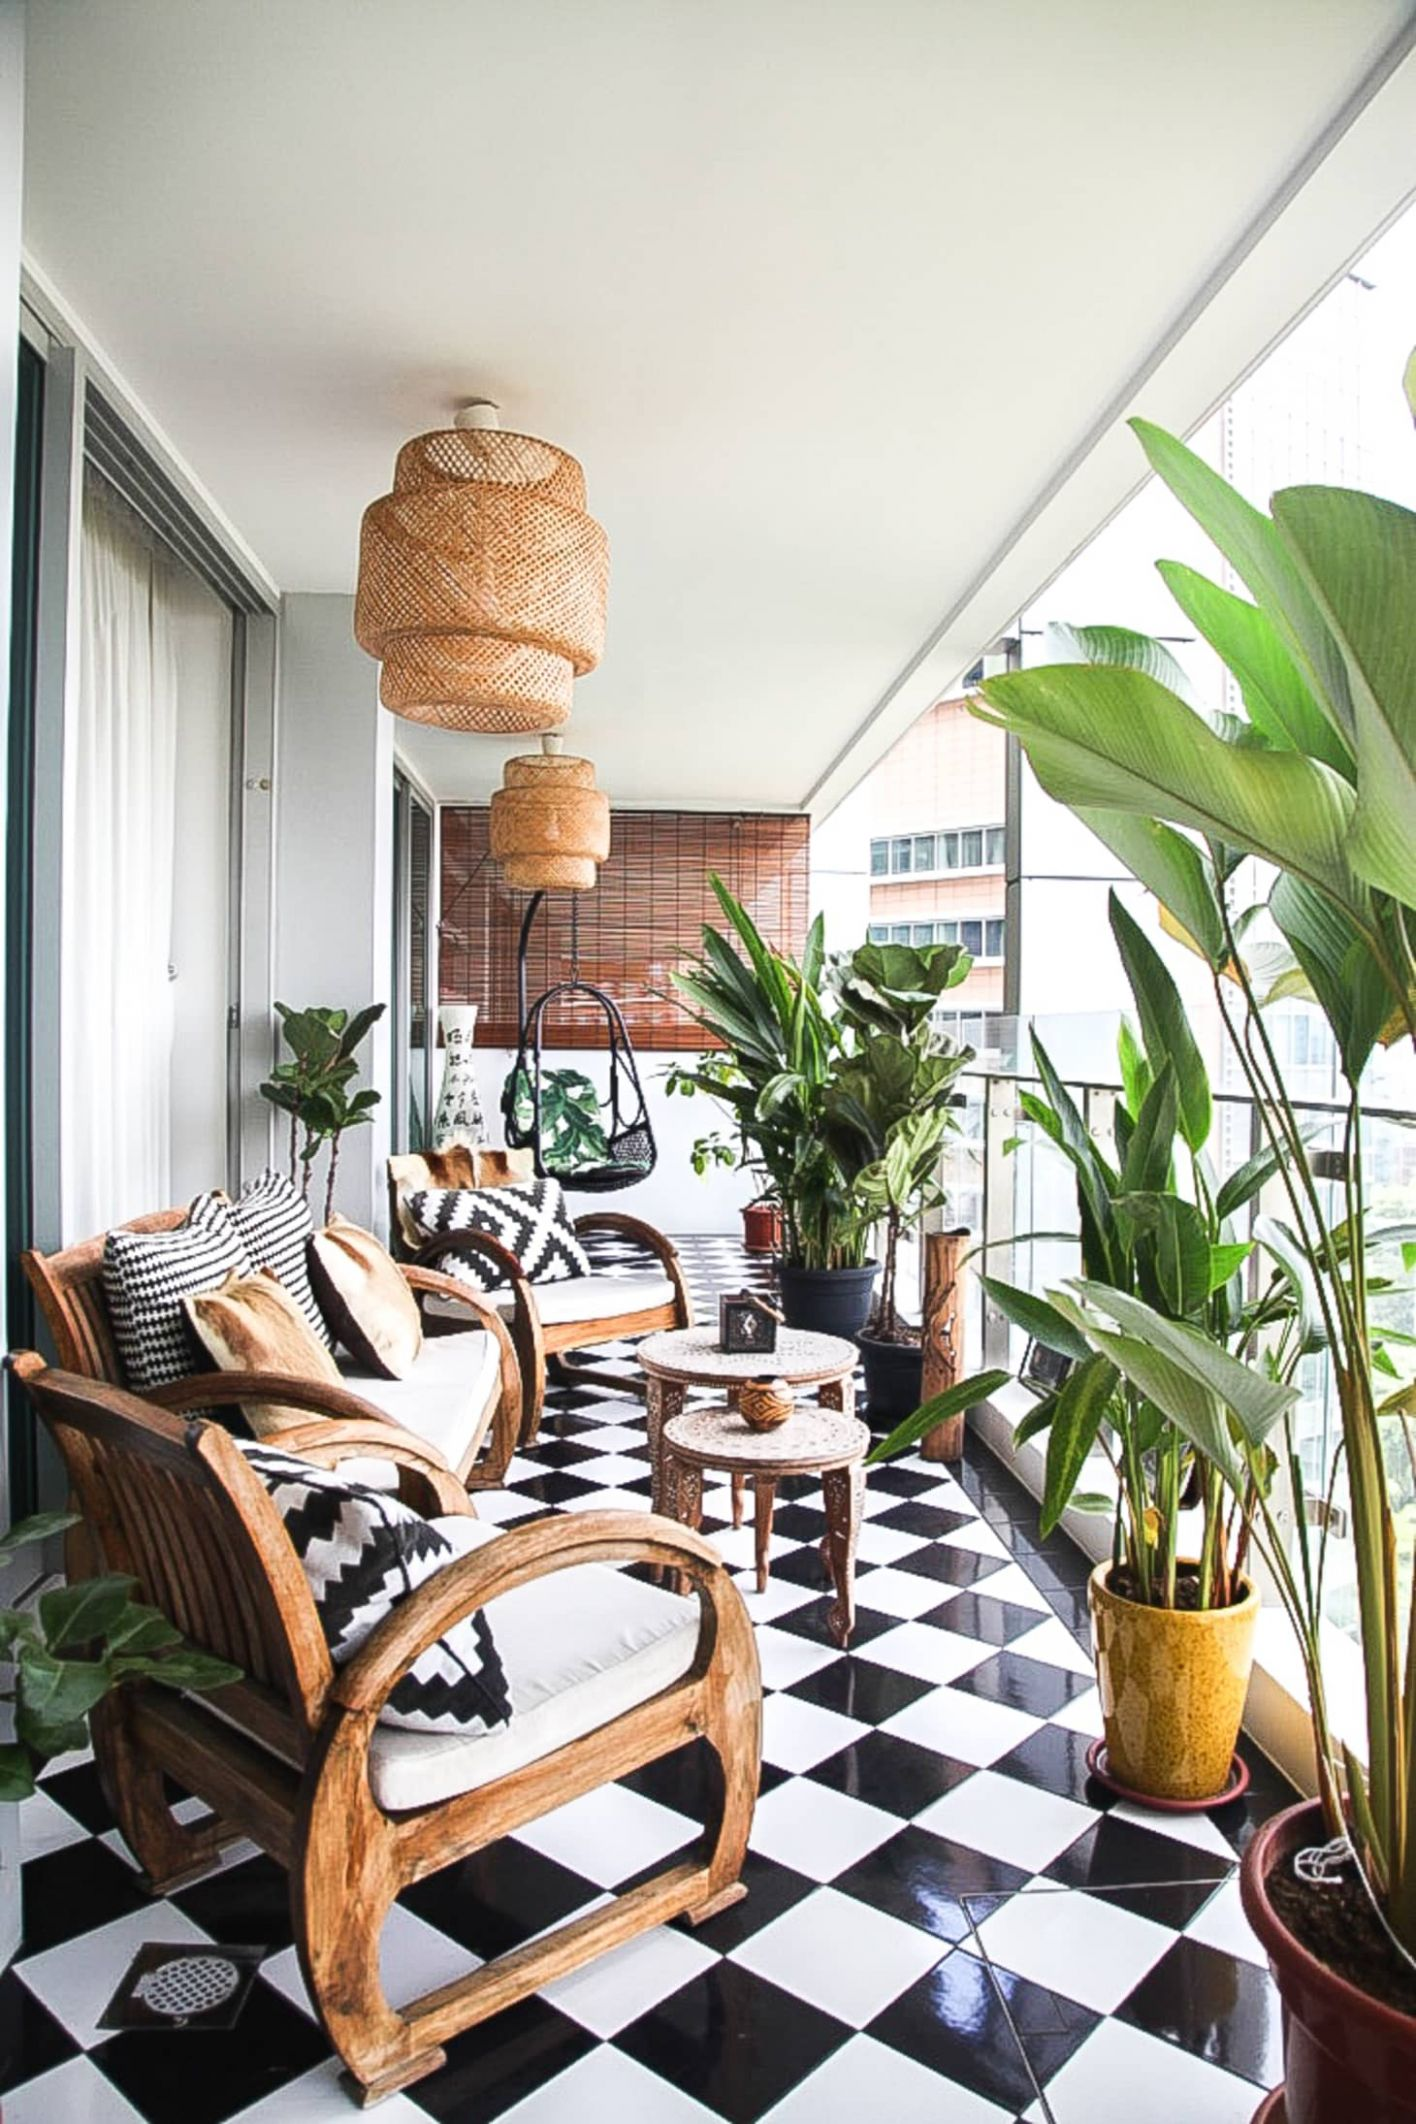 12 Fun Balcony Ideas - How to Decorate a Small Balcony | Apartment ...